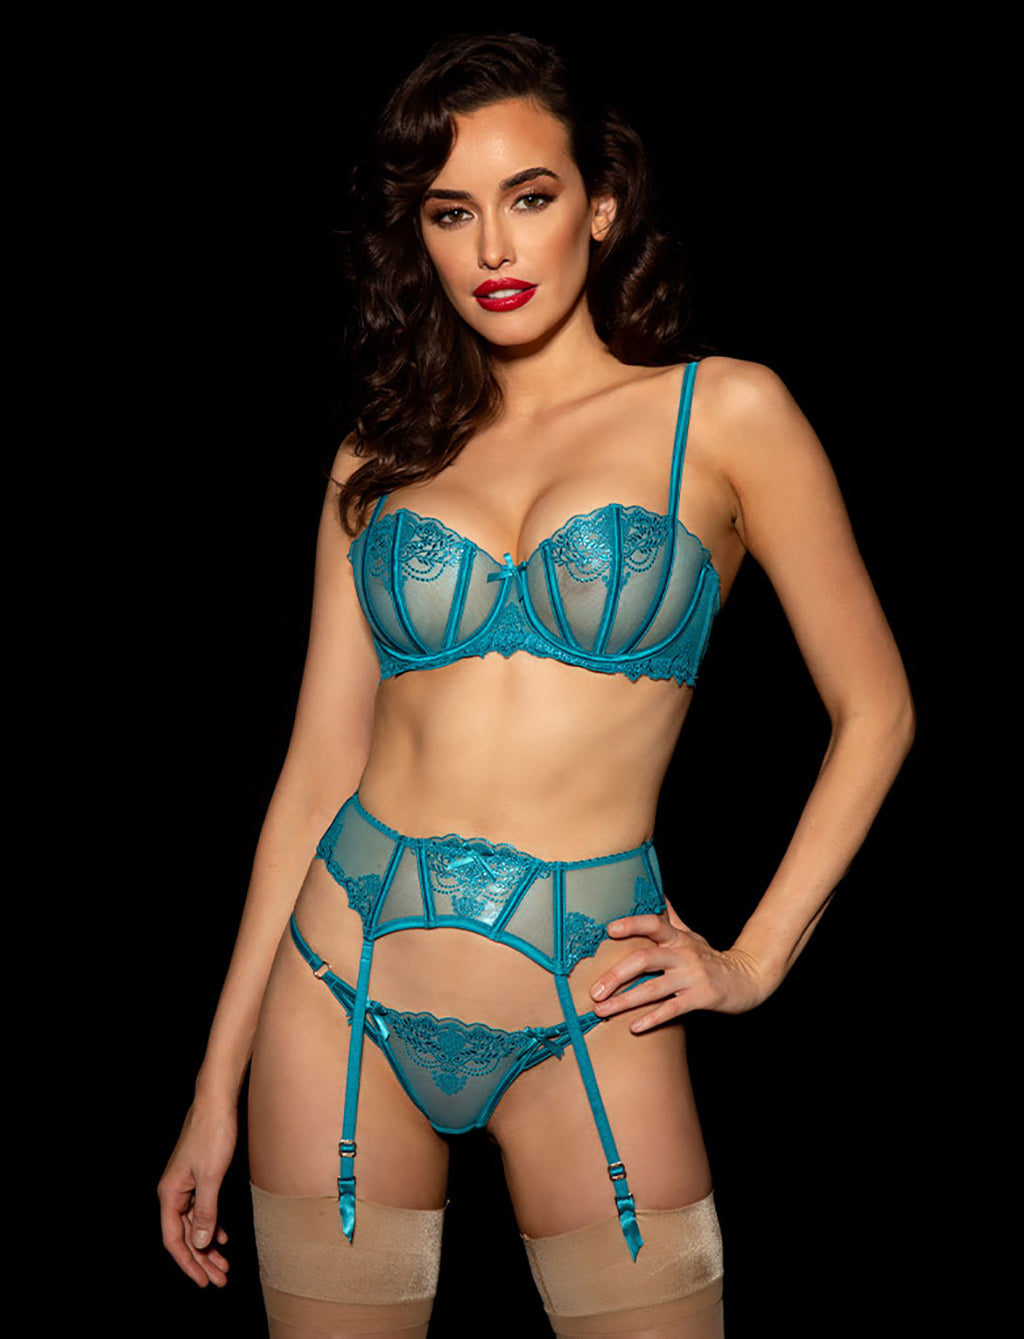 Natalie Teal 3 Piece Set - Shop Lingerie Set | Honey Birdette UK